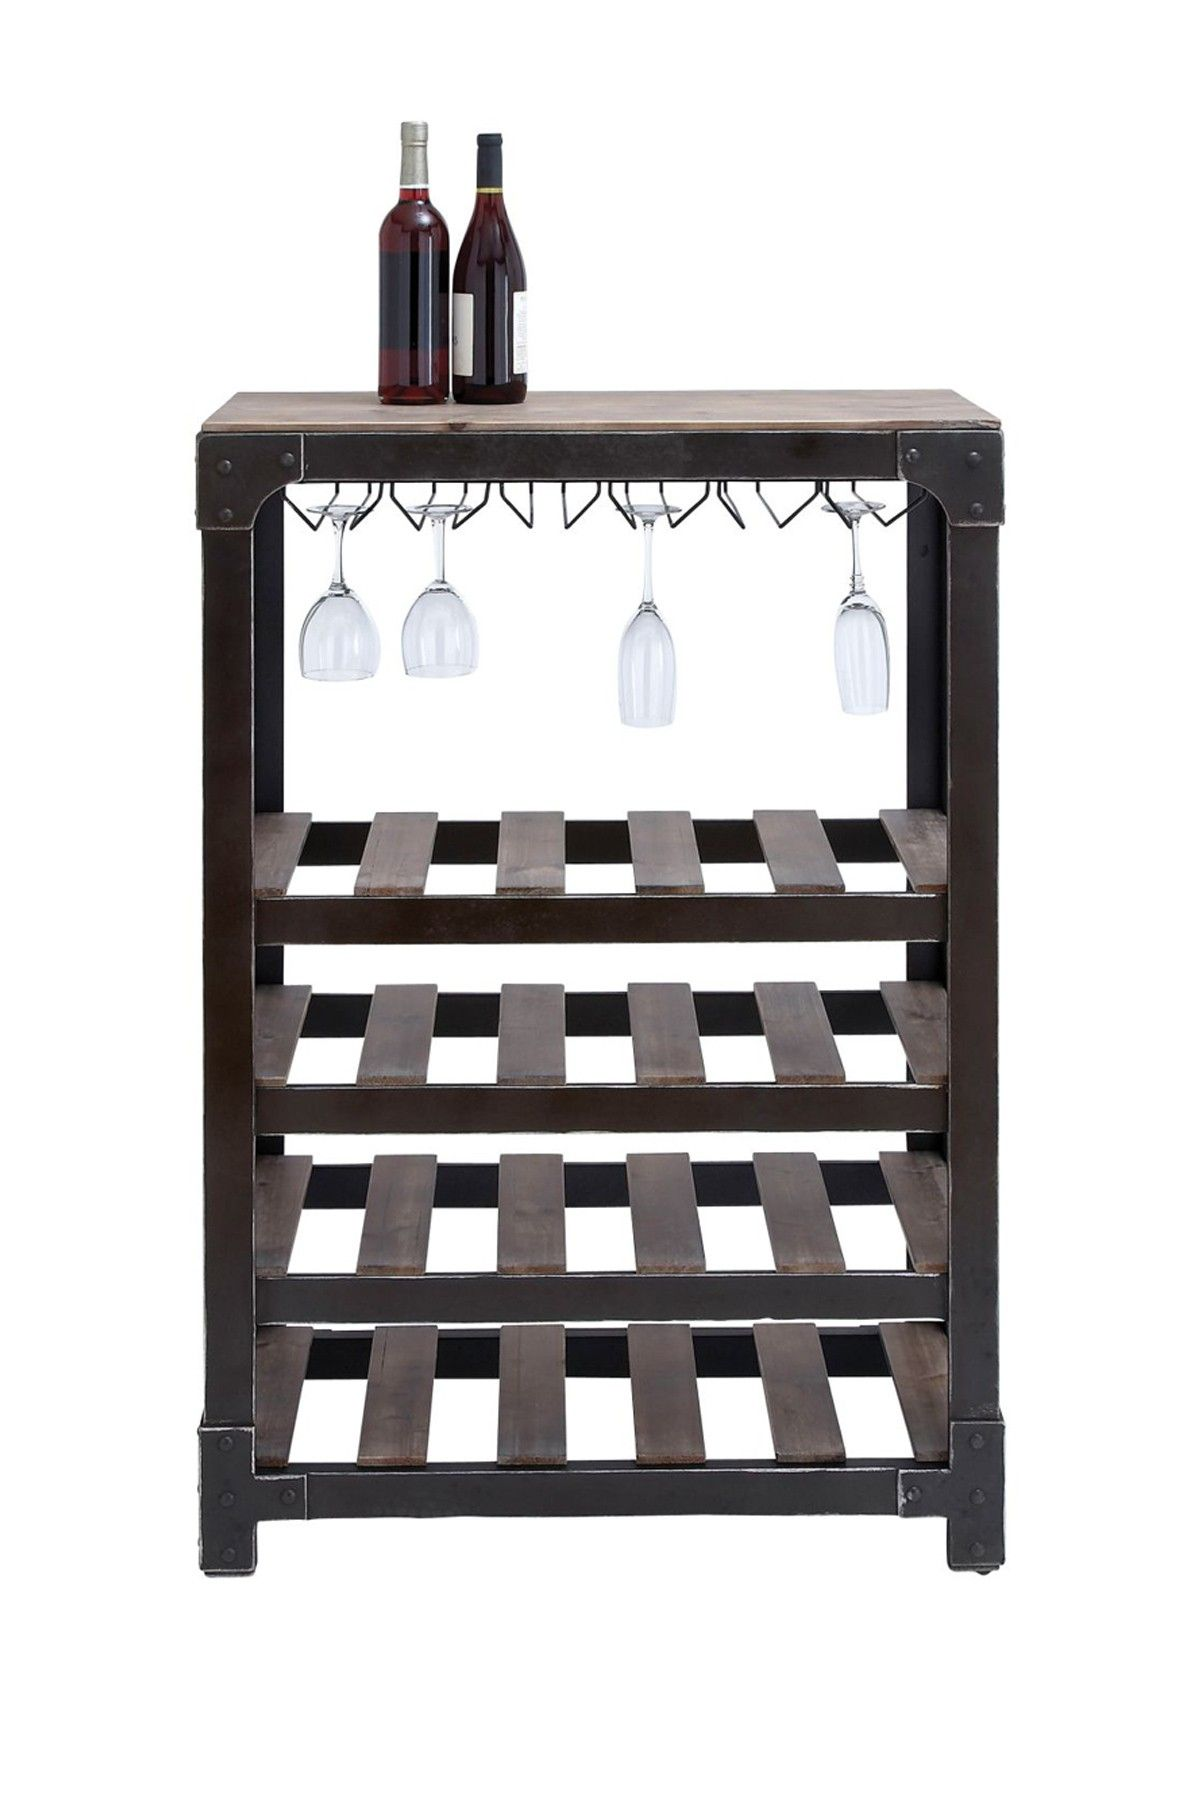 wood floor wine rack city loft accent table with nordstrom sponsored double vanity white storage safavieh home collection brogen gold outdoor patio umbrella console decor grey